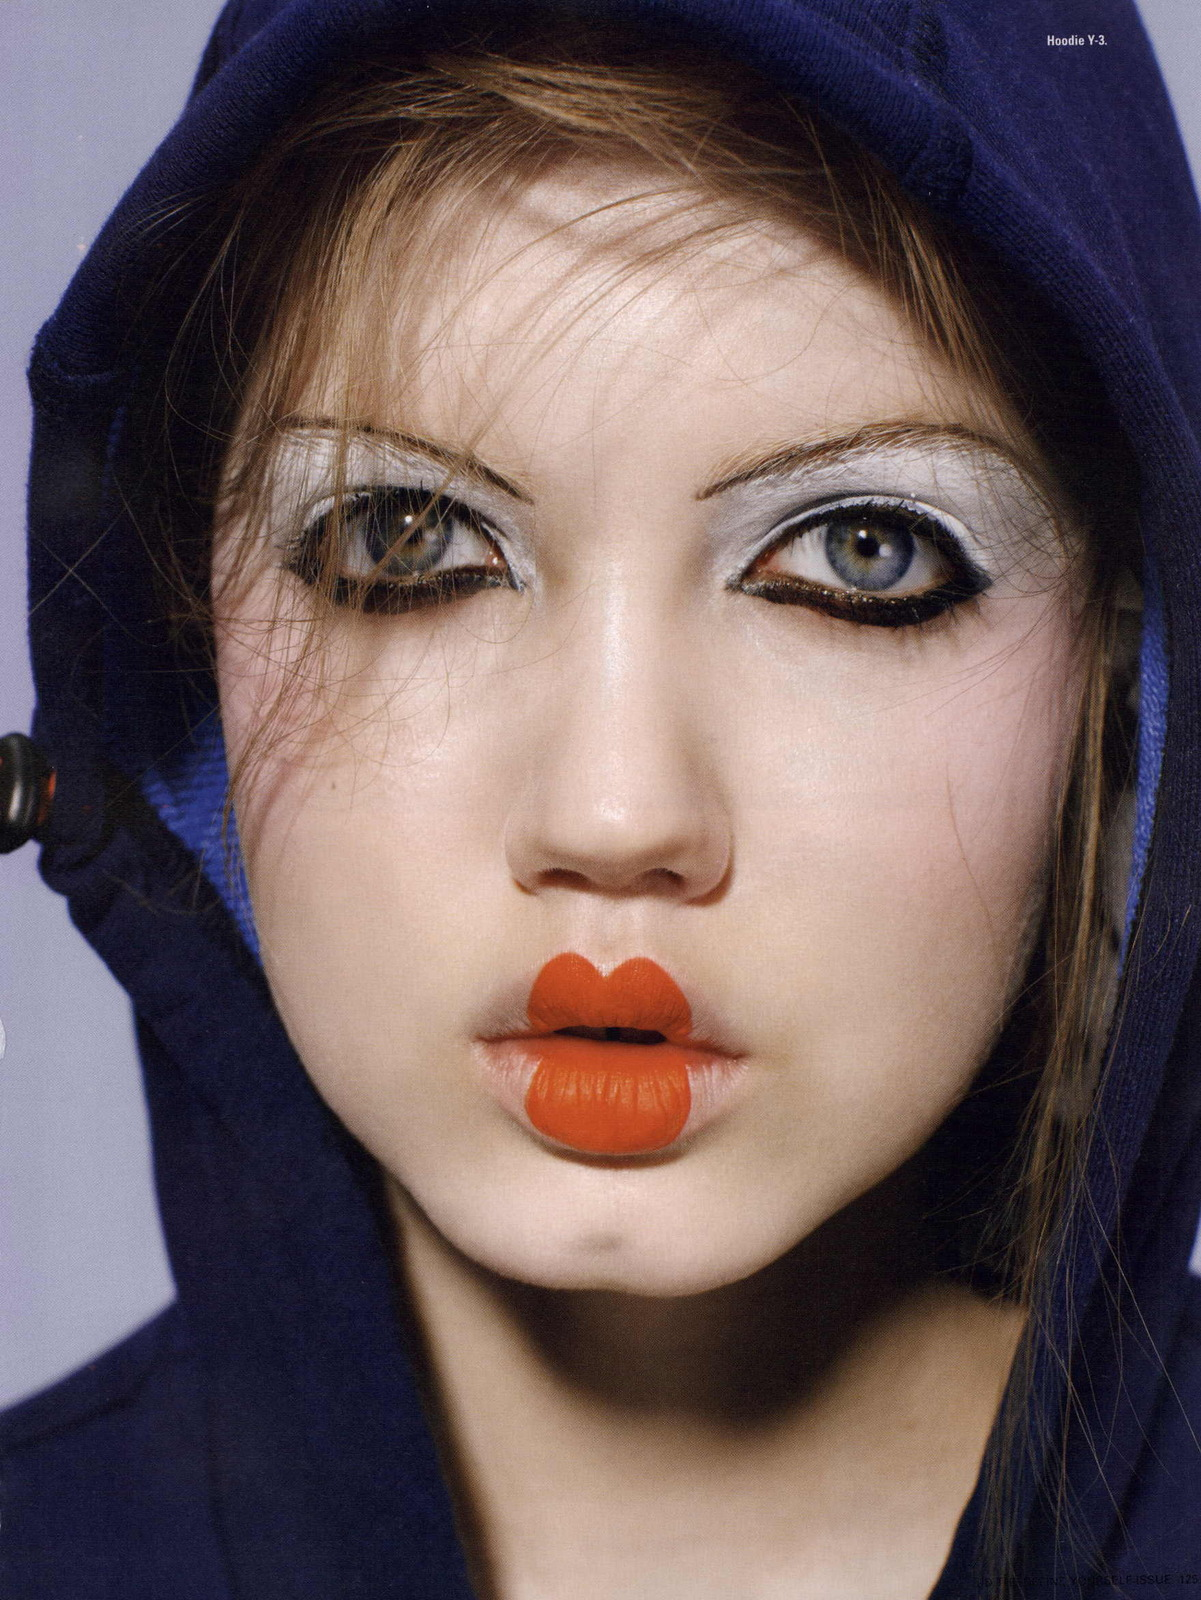 Smile: Lindsey Wixson in i-D Fall 2010